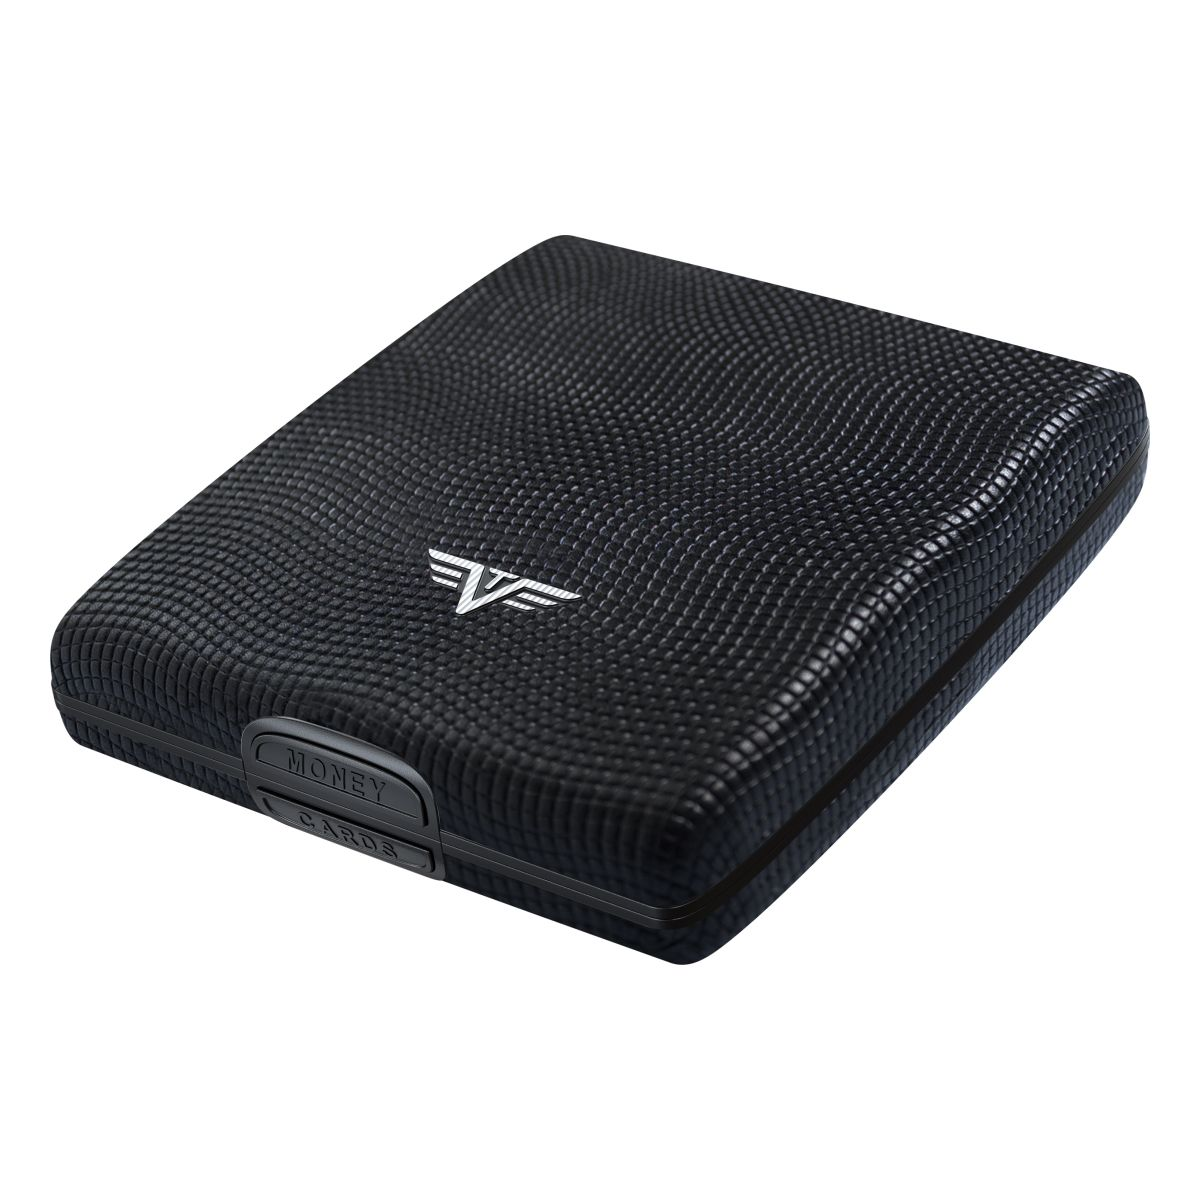 TRU VIRTU Aluminum Wallet Beluga - Money & Cards - Leather Line - Lizard Black